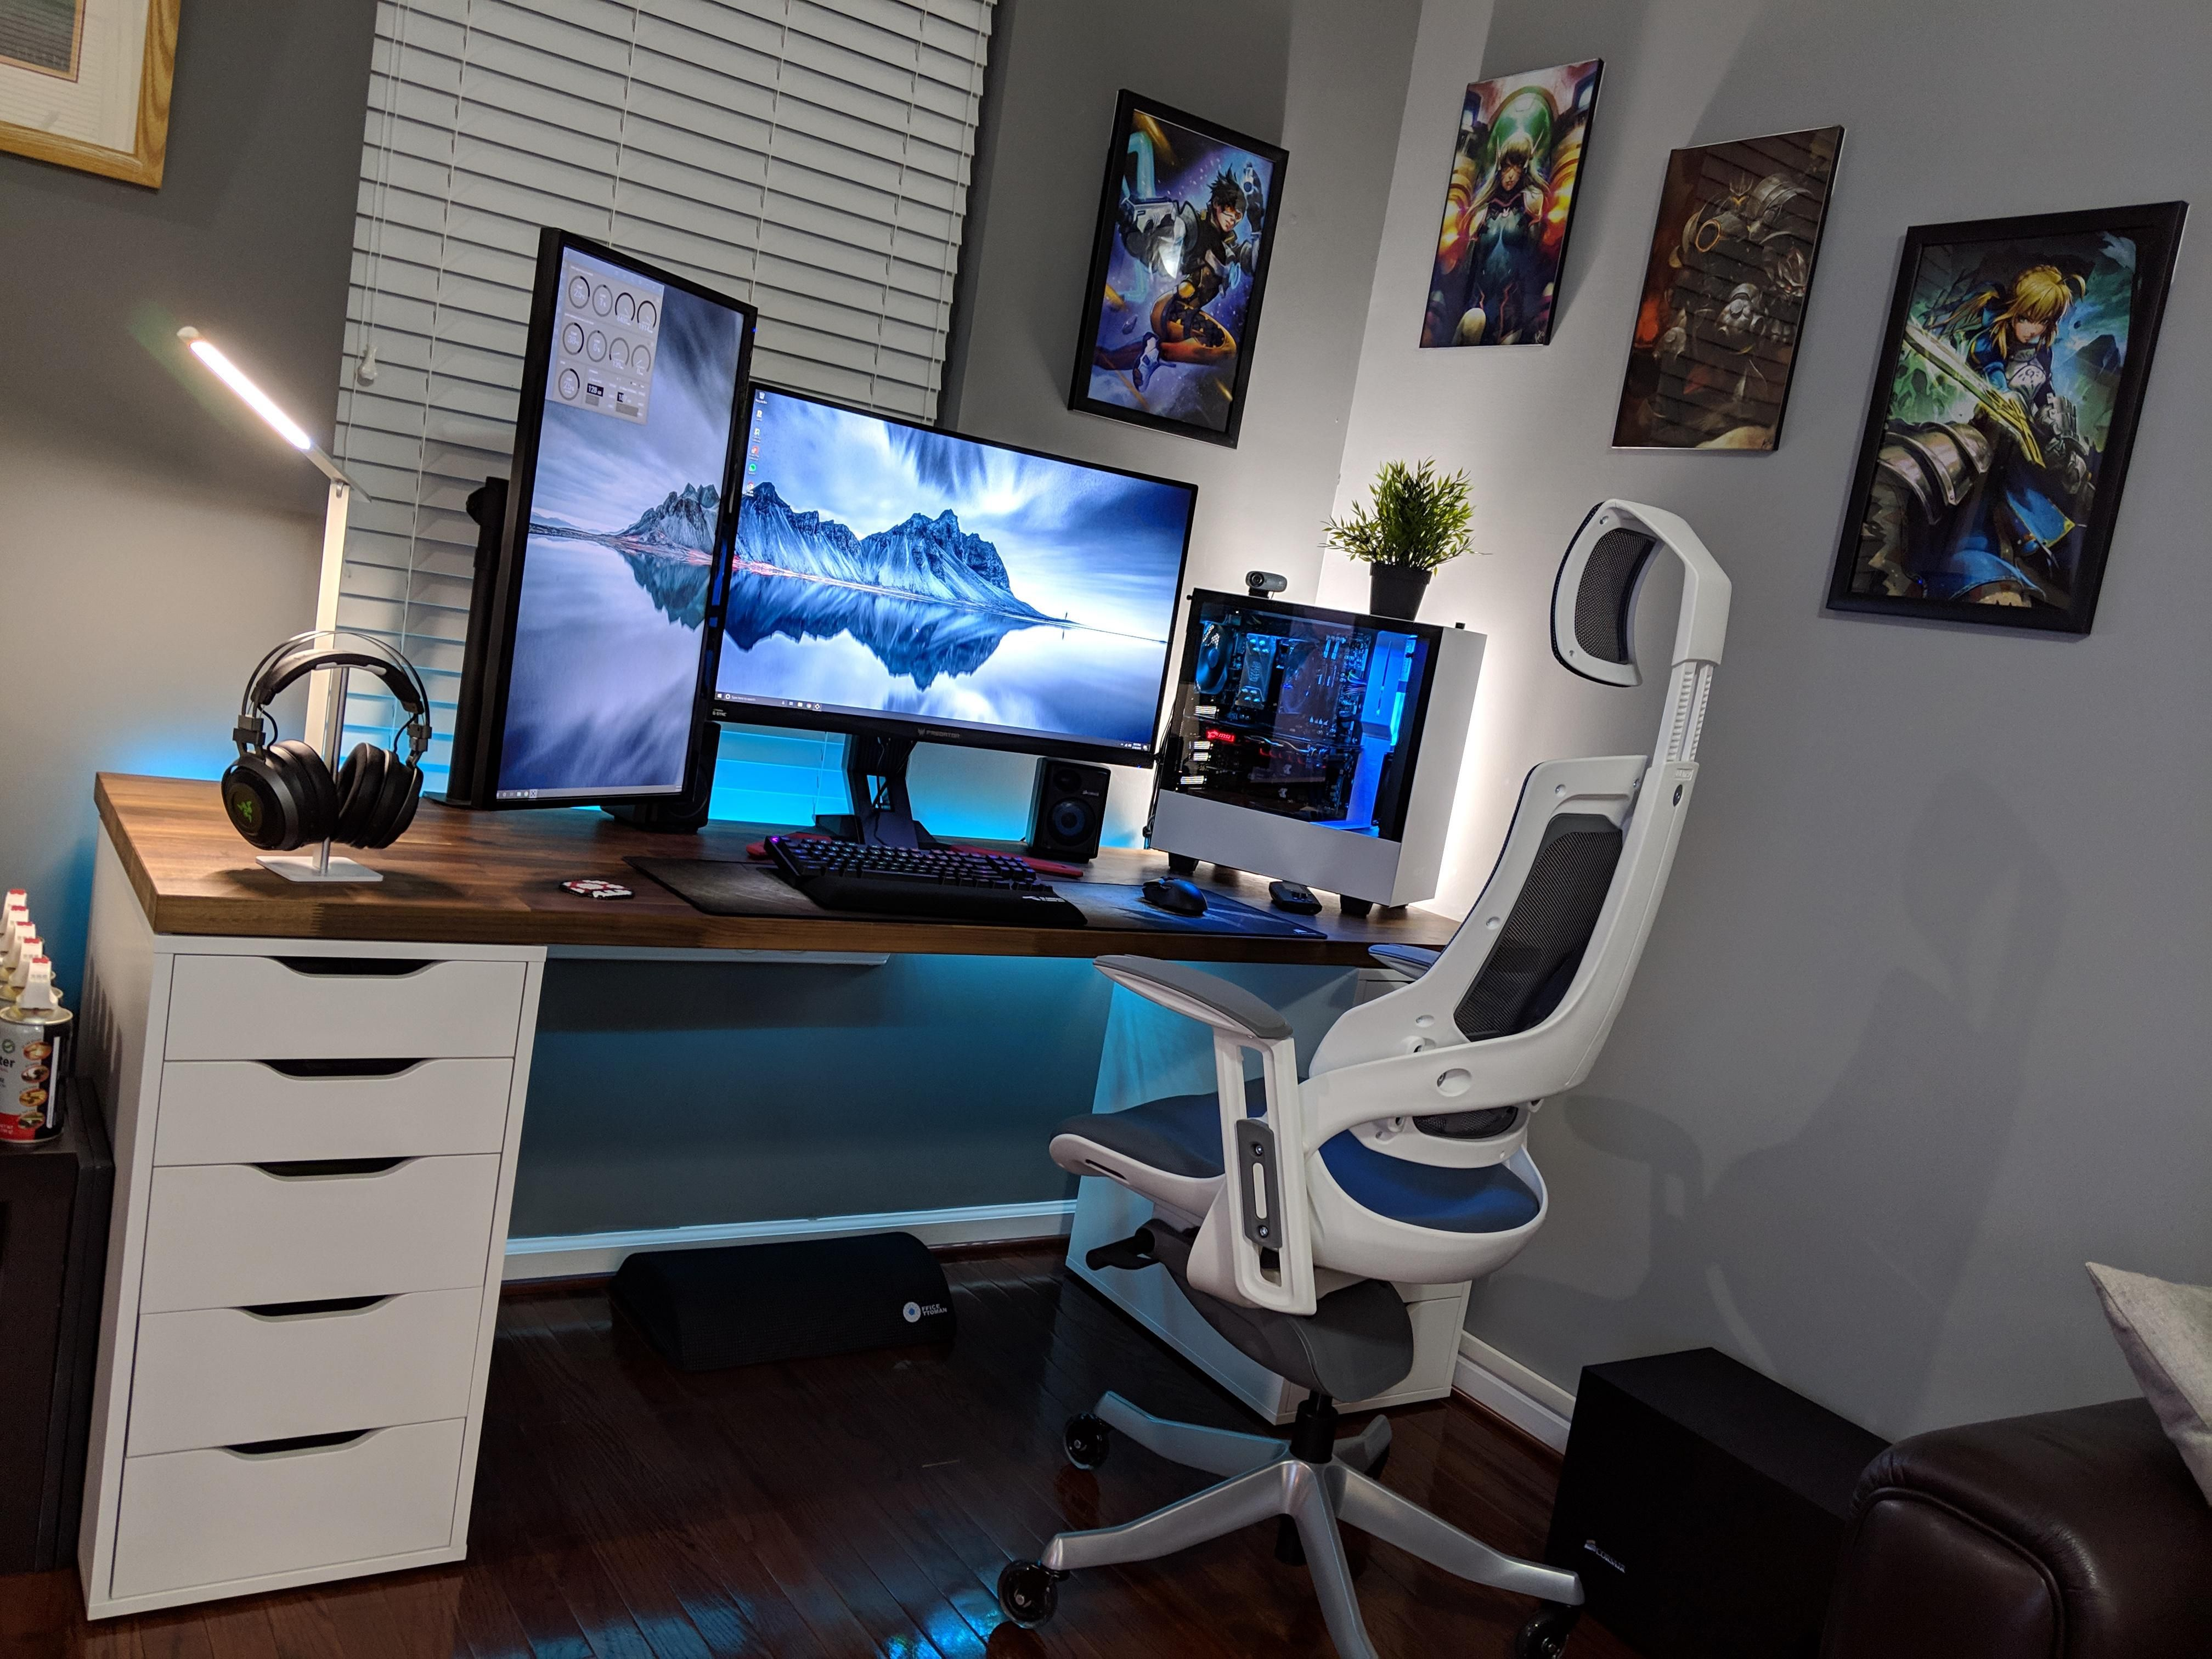 New Furniture Headset And Stand Lamp Wall Art And Cable Management